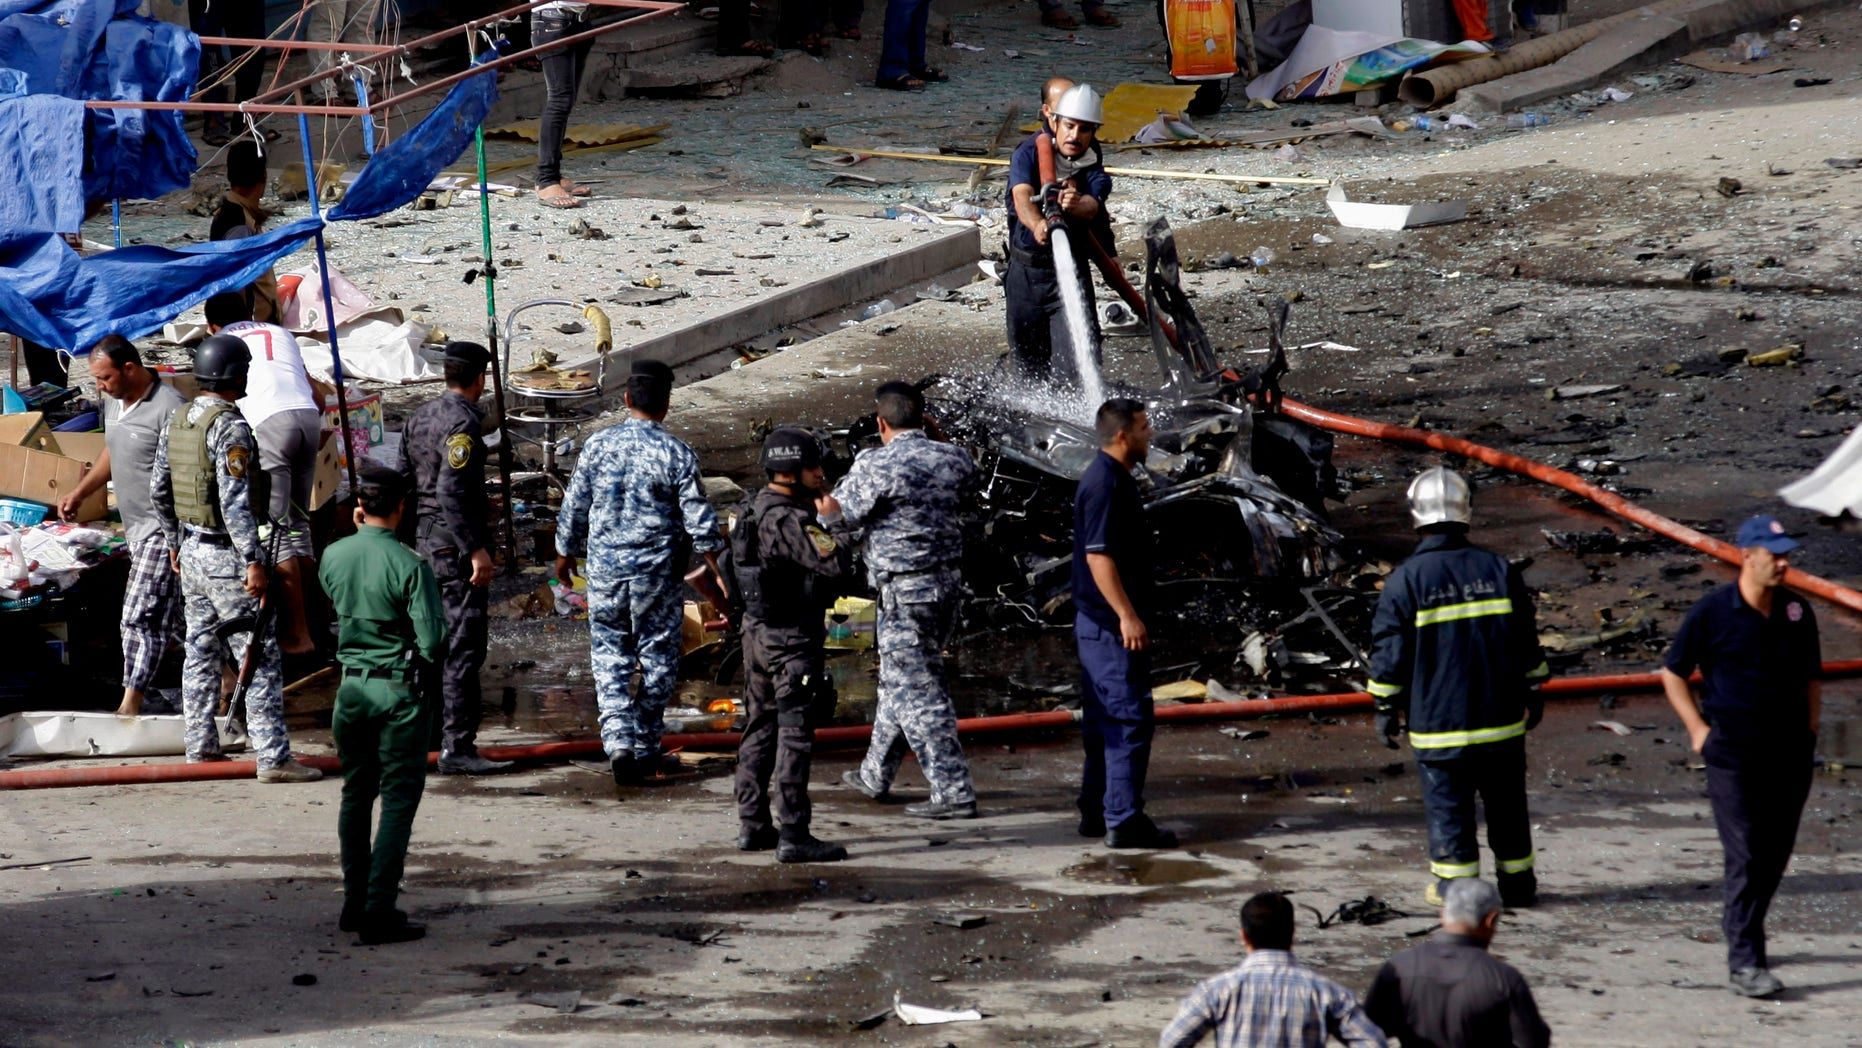 Security forces inspect the scene of a car bomb attack in the Baghdad, Iraq, Monday, May 27, 2013. A parked car bomb explosion in the busy commercial Sadoun Street in central Baghdad, killed and wounded scores of people, police said. (AP Photo/Khalid Mohammed)